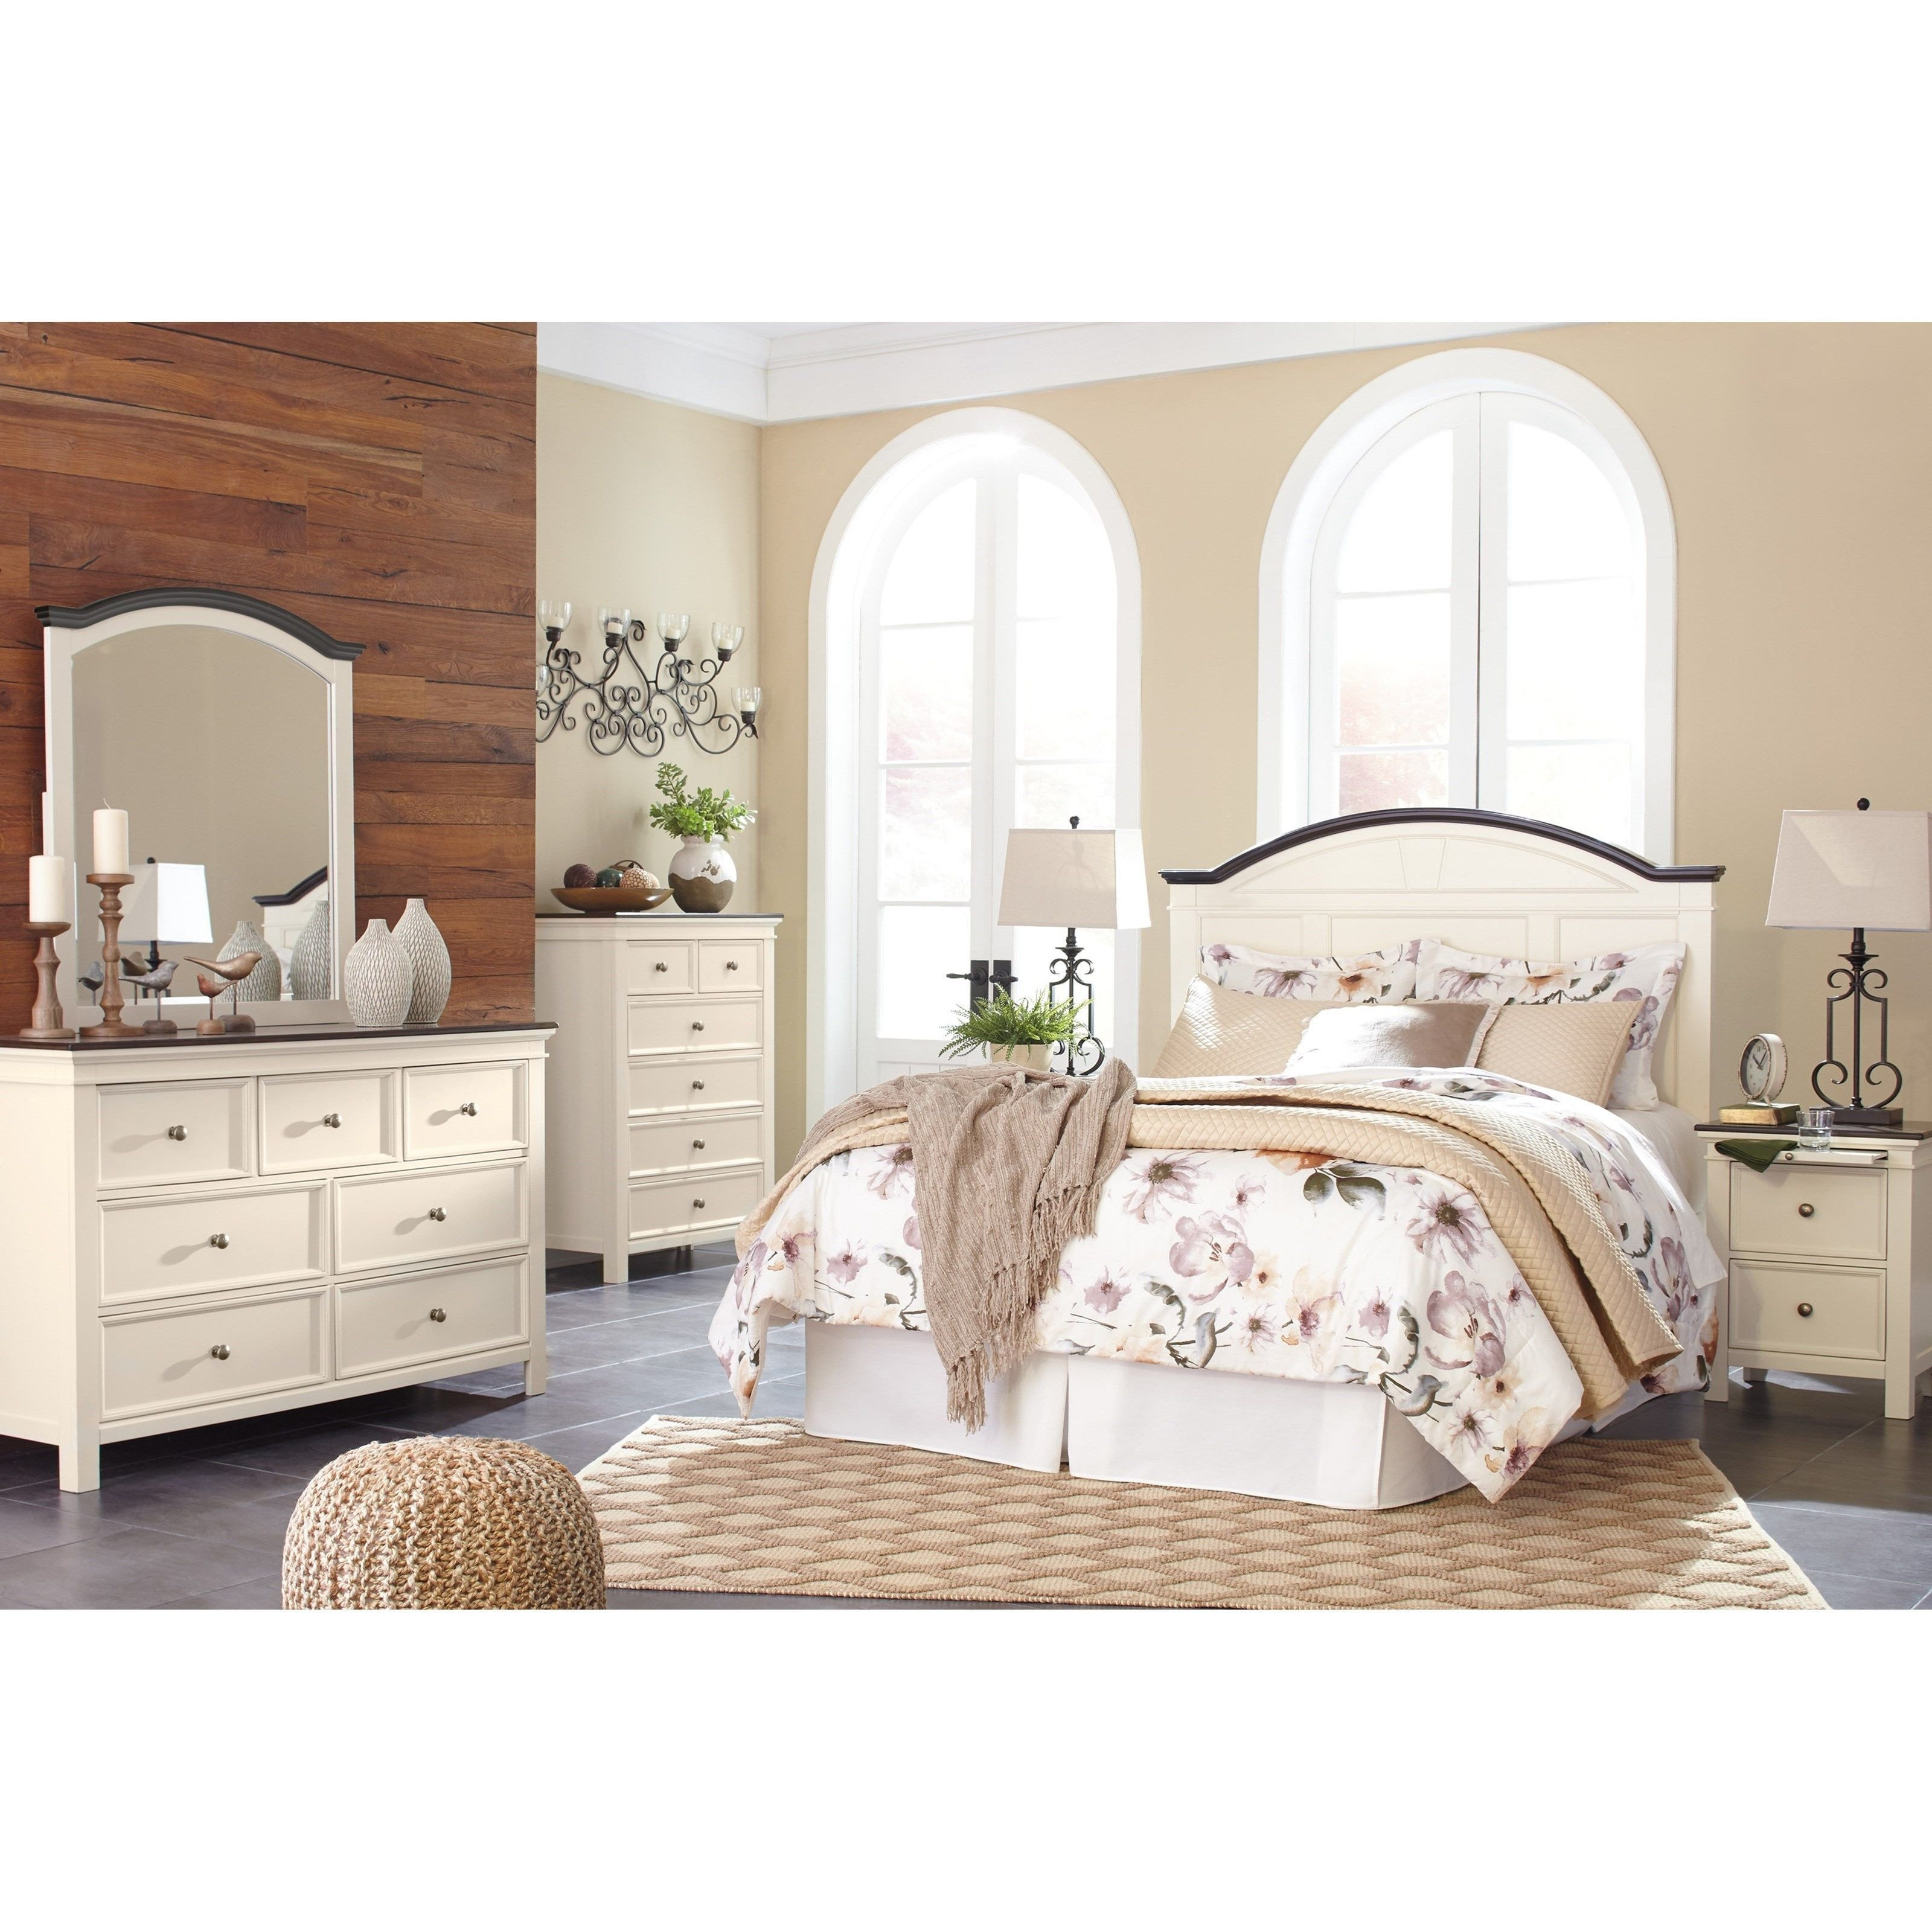 Vaughan Bassett Bedroom Set Luxury Woodanville Queen Bedroom Group by Signature Design by